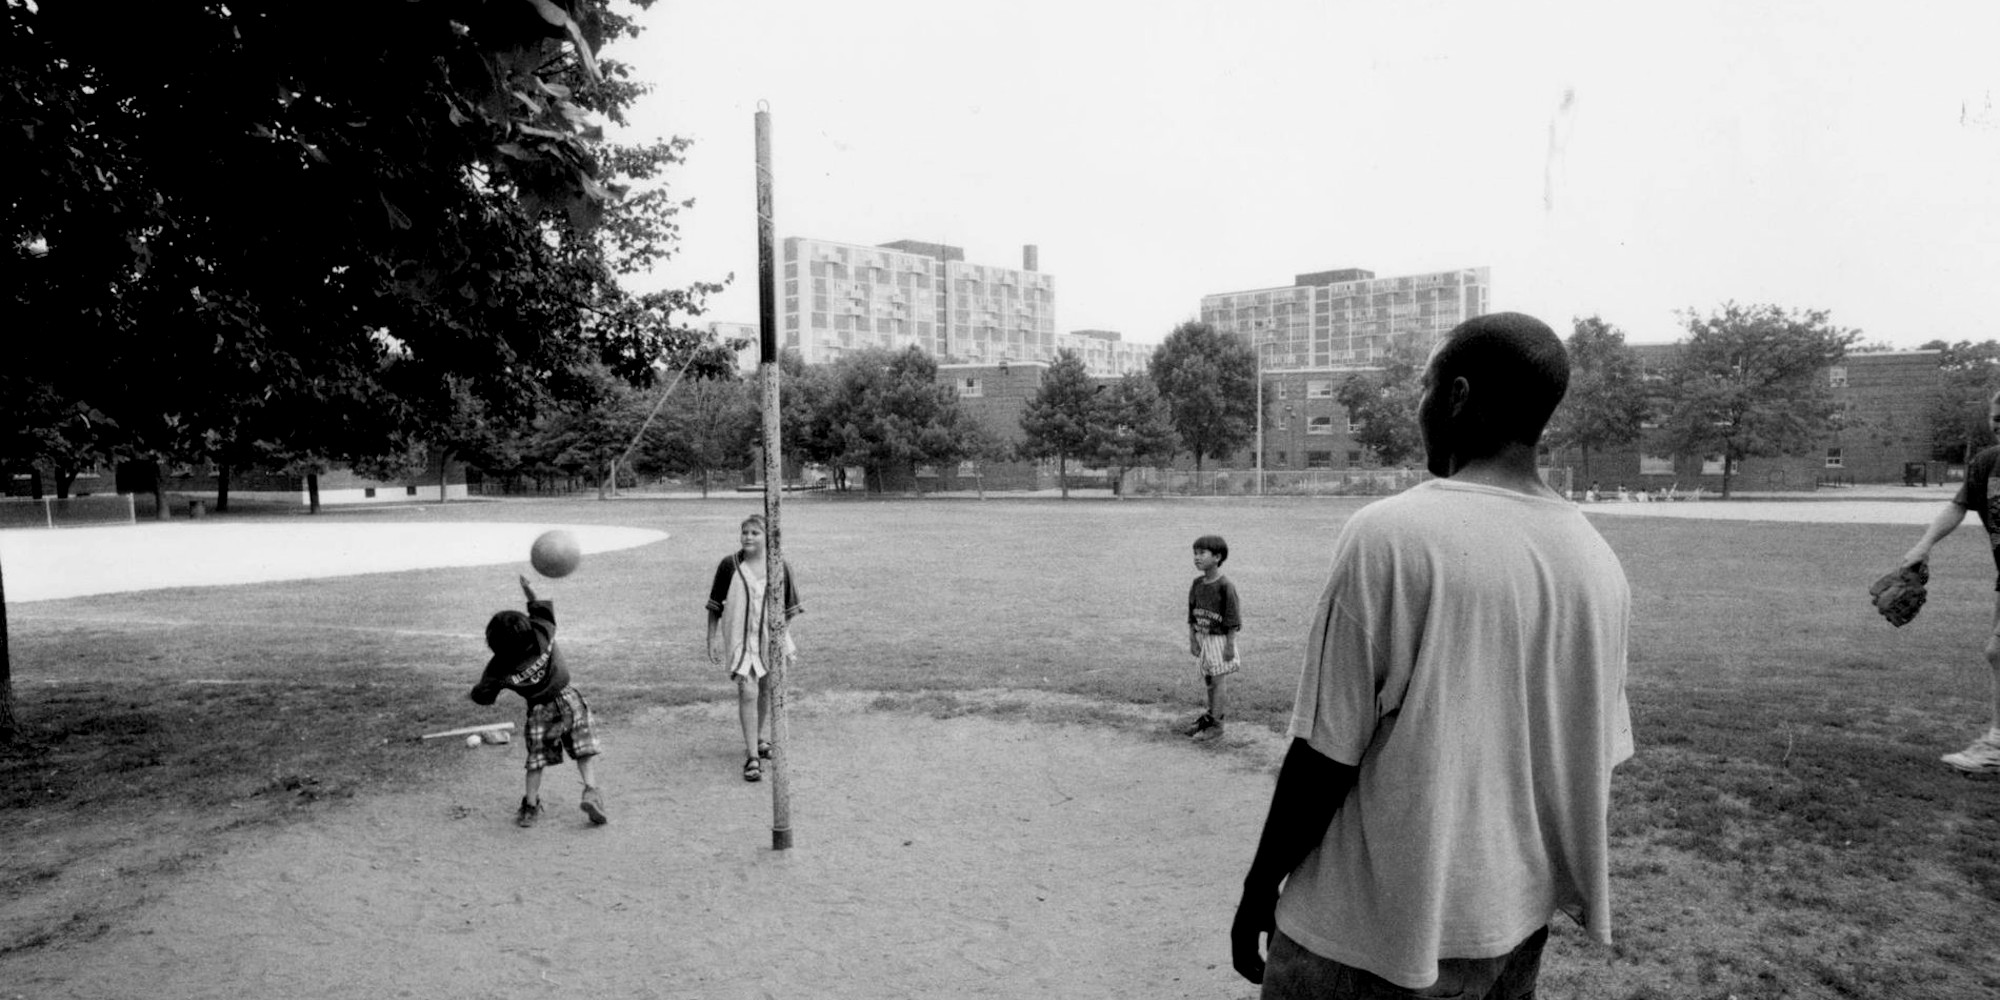 Kids playing in Regent Park during Taijah's youth. For Taijah, children running around and playing without worries is emblematic of what community looks like in Regent Park.